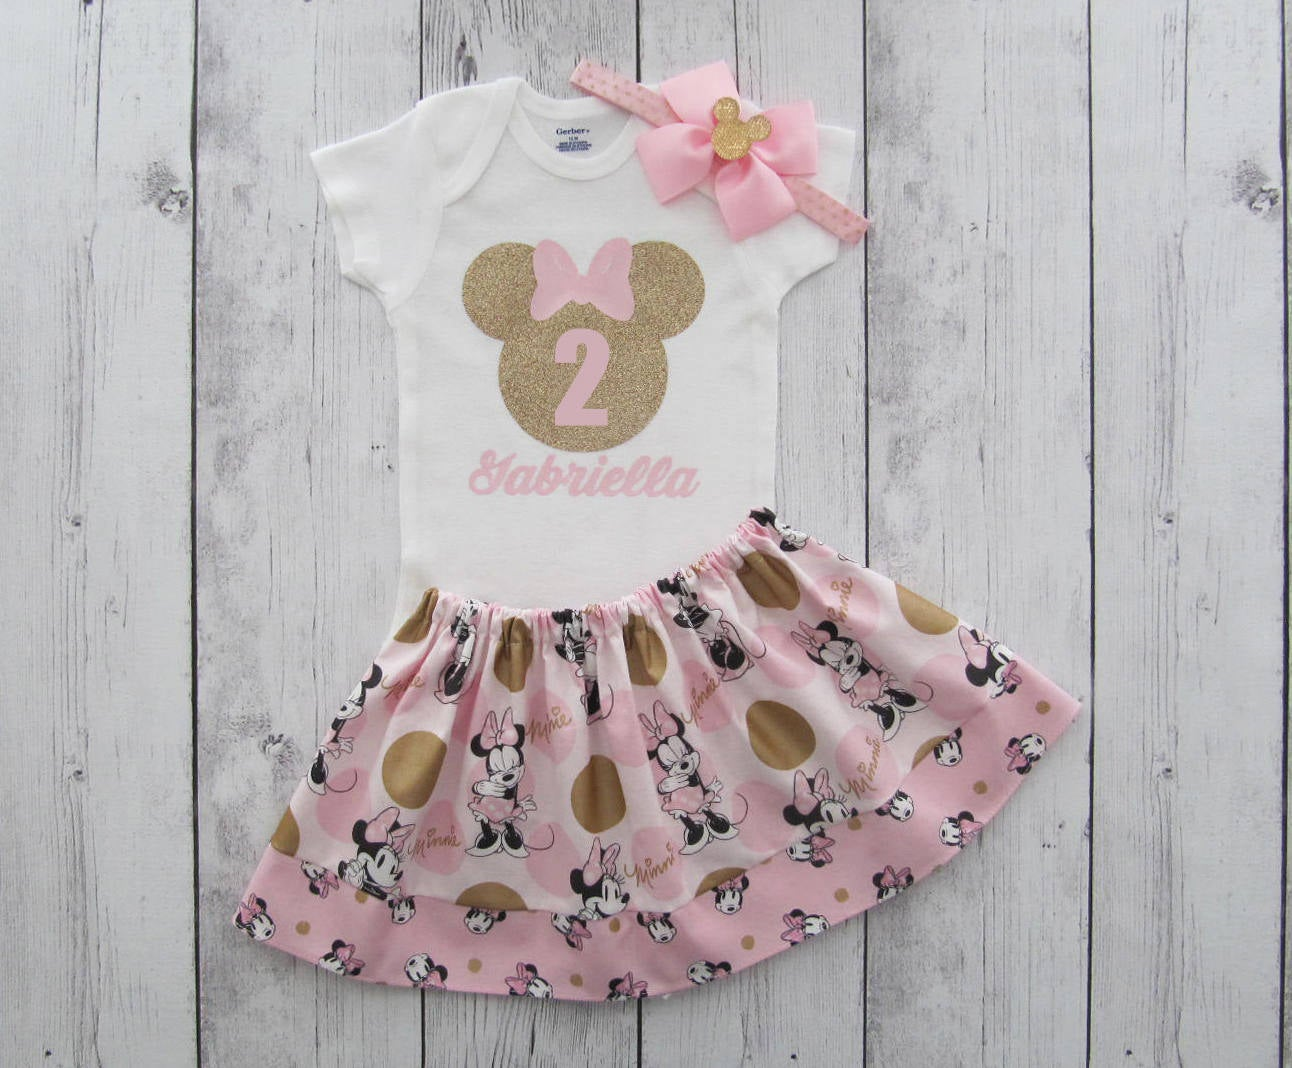 Minnie Mouse Second Birthday Outfit in pink and gold - onesie and skirt, minnie mouse ears, girl birthday, minnie mouse birthday